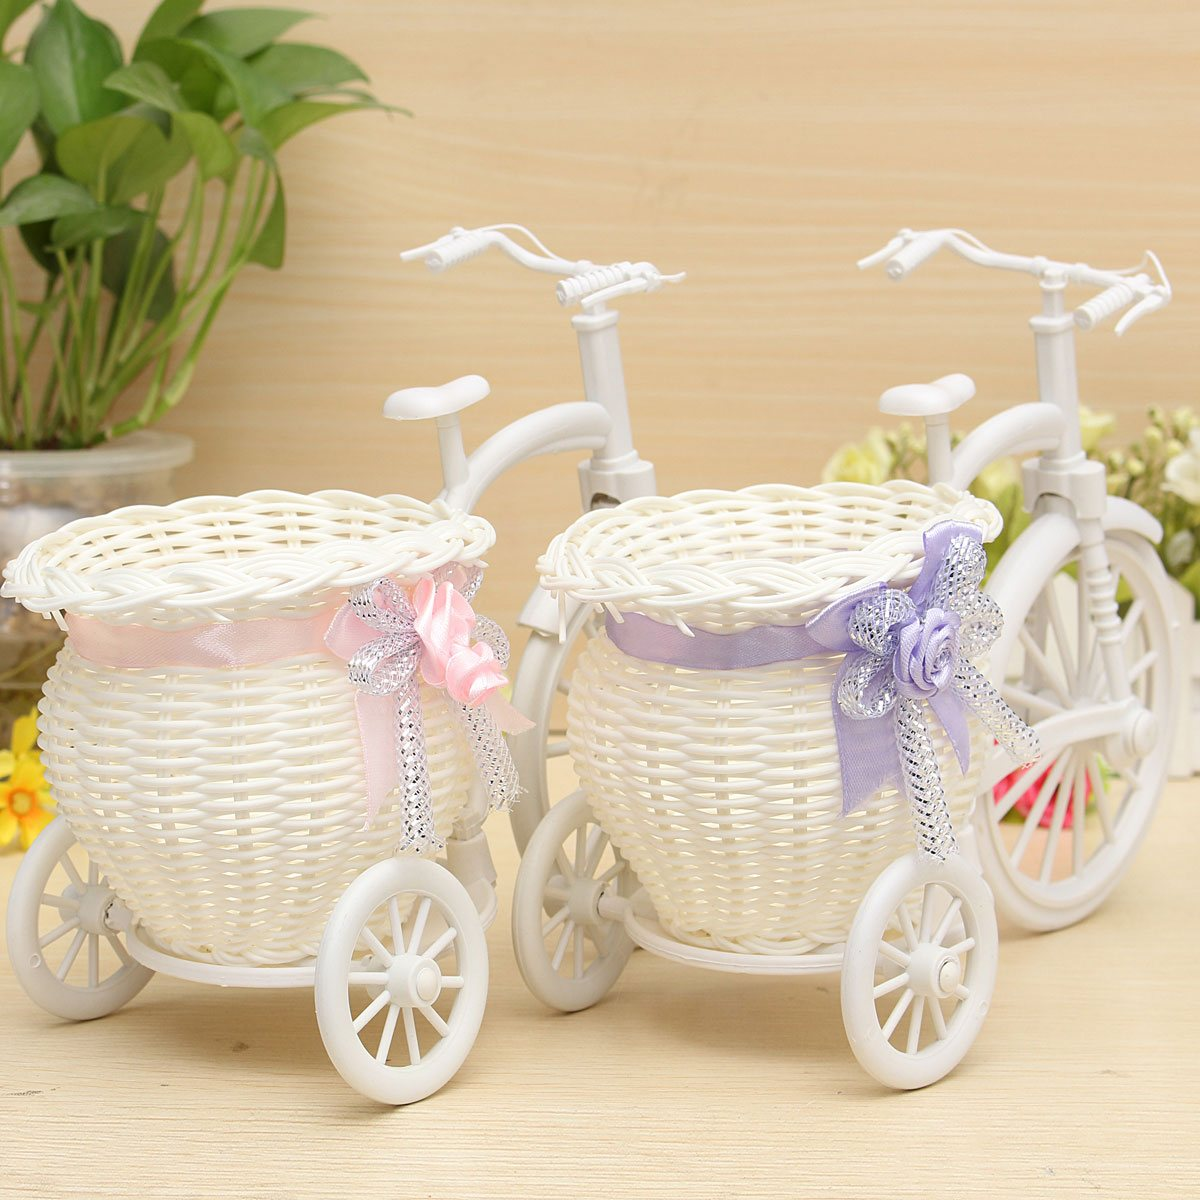 Beauty Rattan Tricycle Bike Flower Basket Vase Storage Garden Wedding Party Decoration Office Bedroom Holding Candy Gift(China (Mainland))